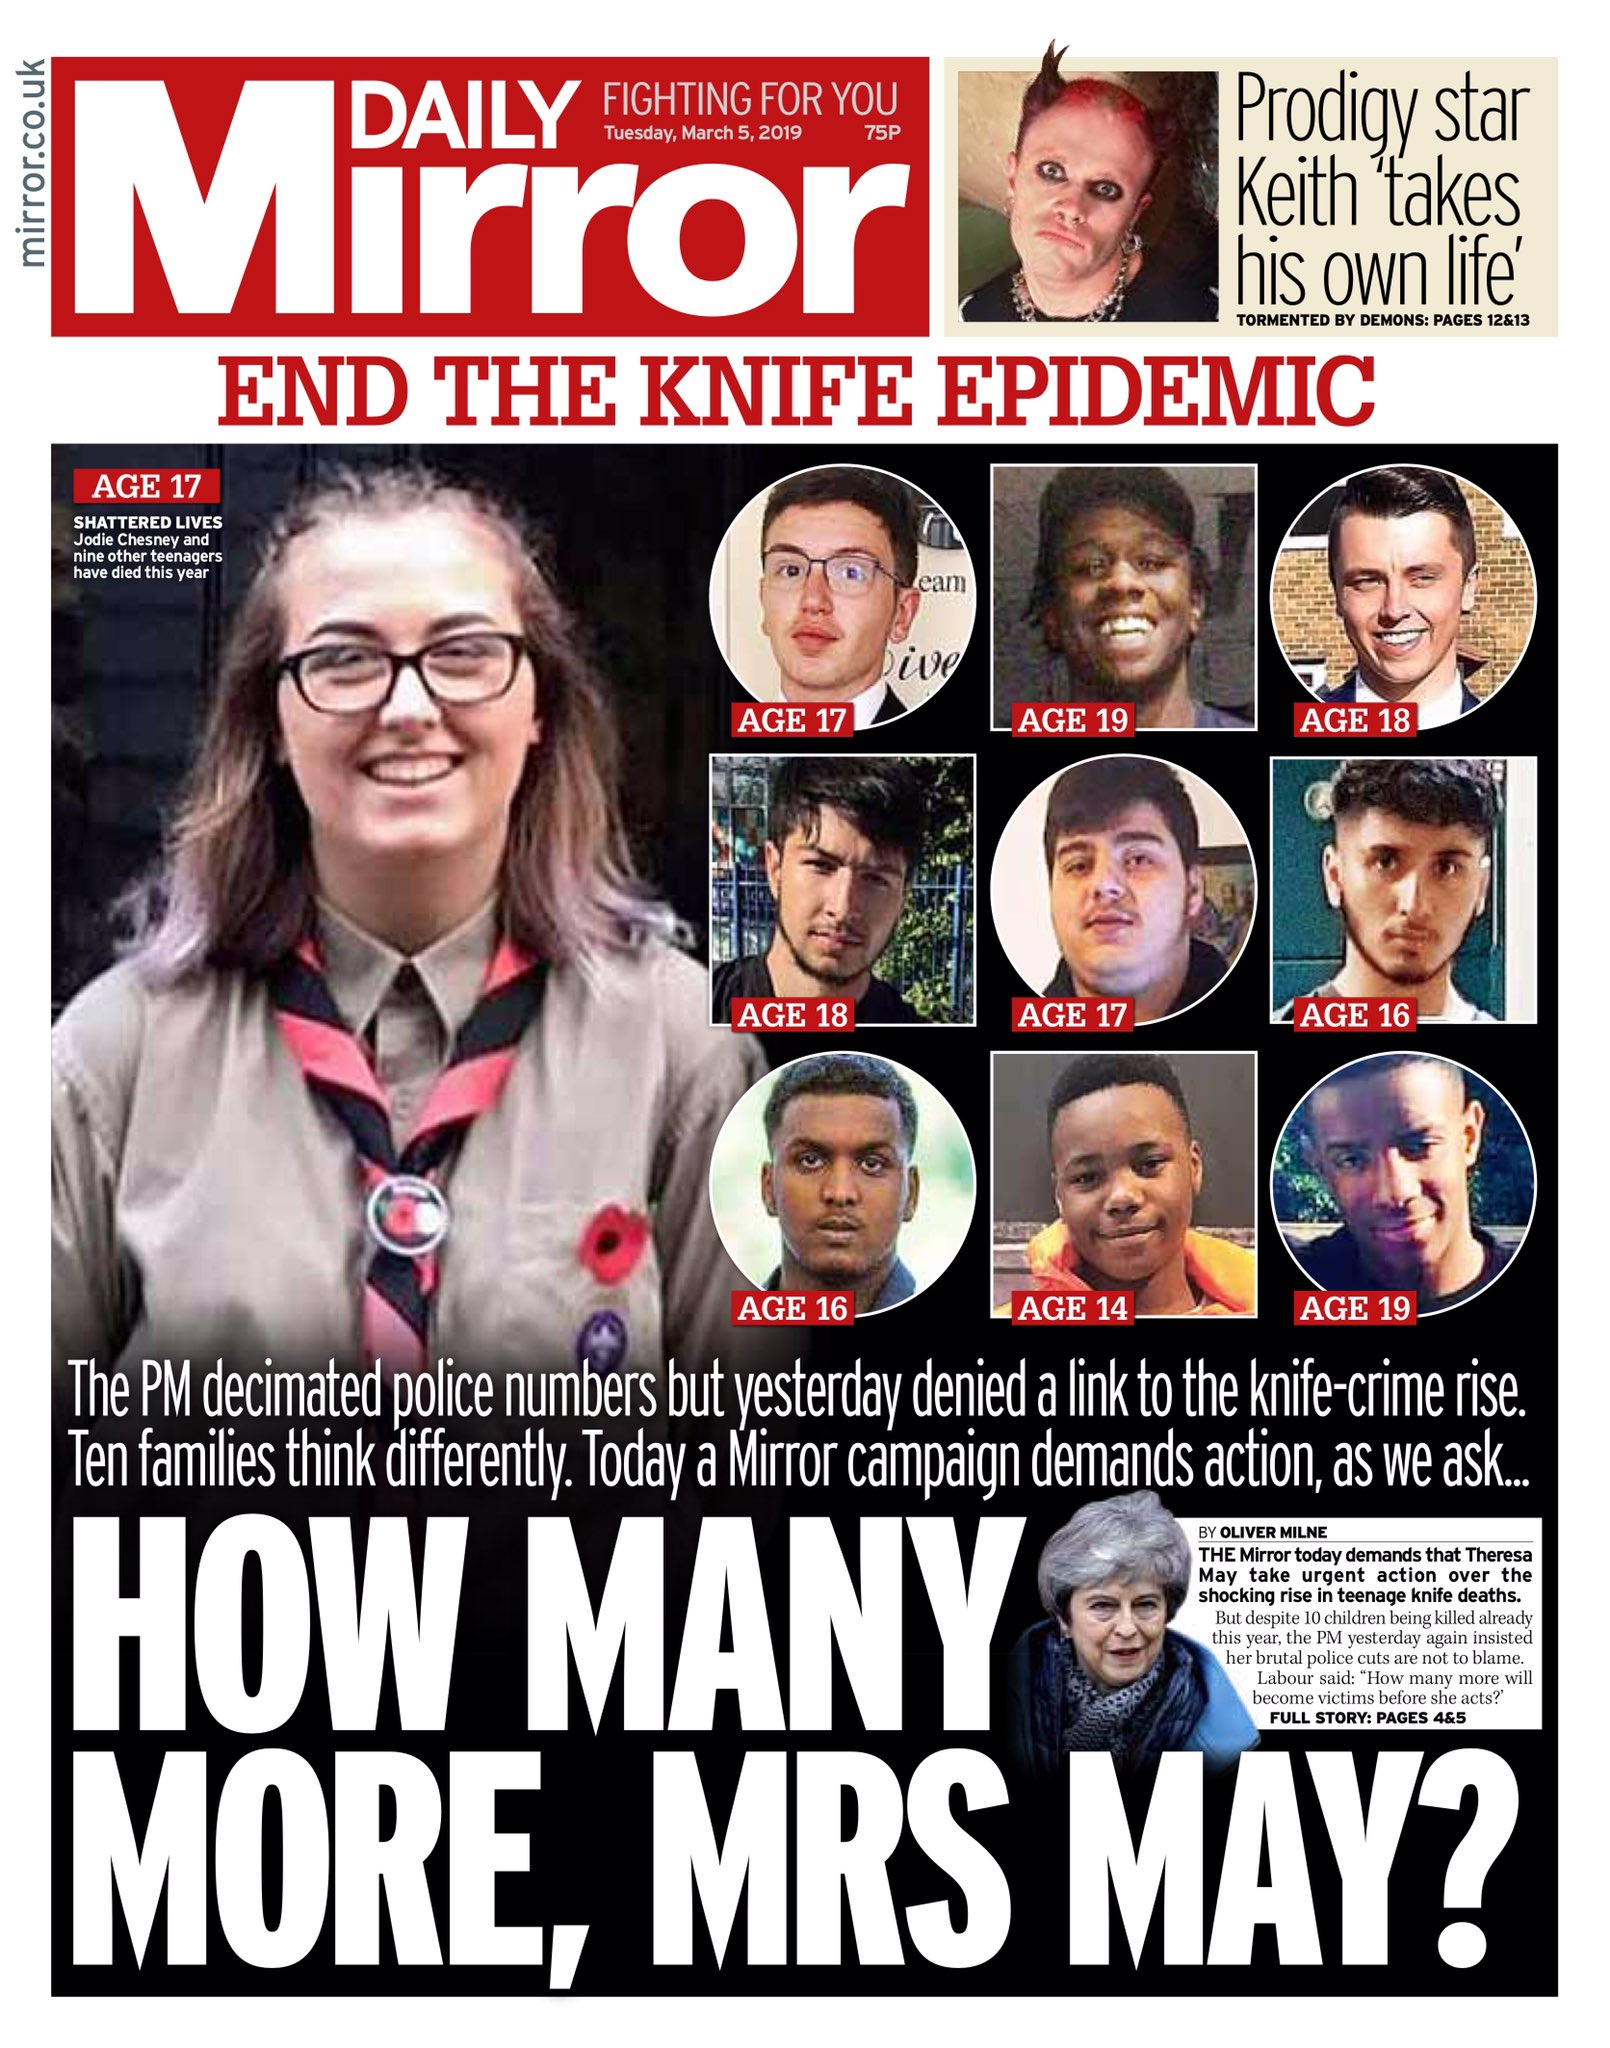 MIRROR: How many more, Mrs May? #tomorrowspaperstoday https://t.co/cbMJZBbJid